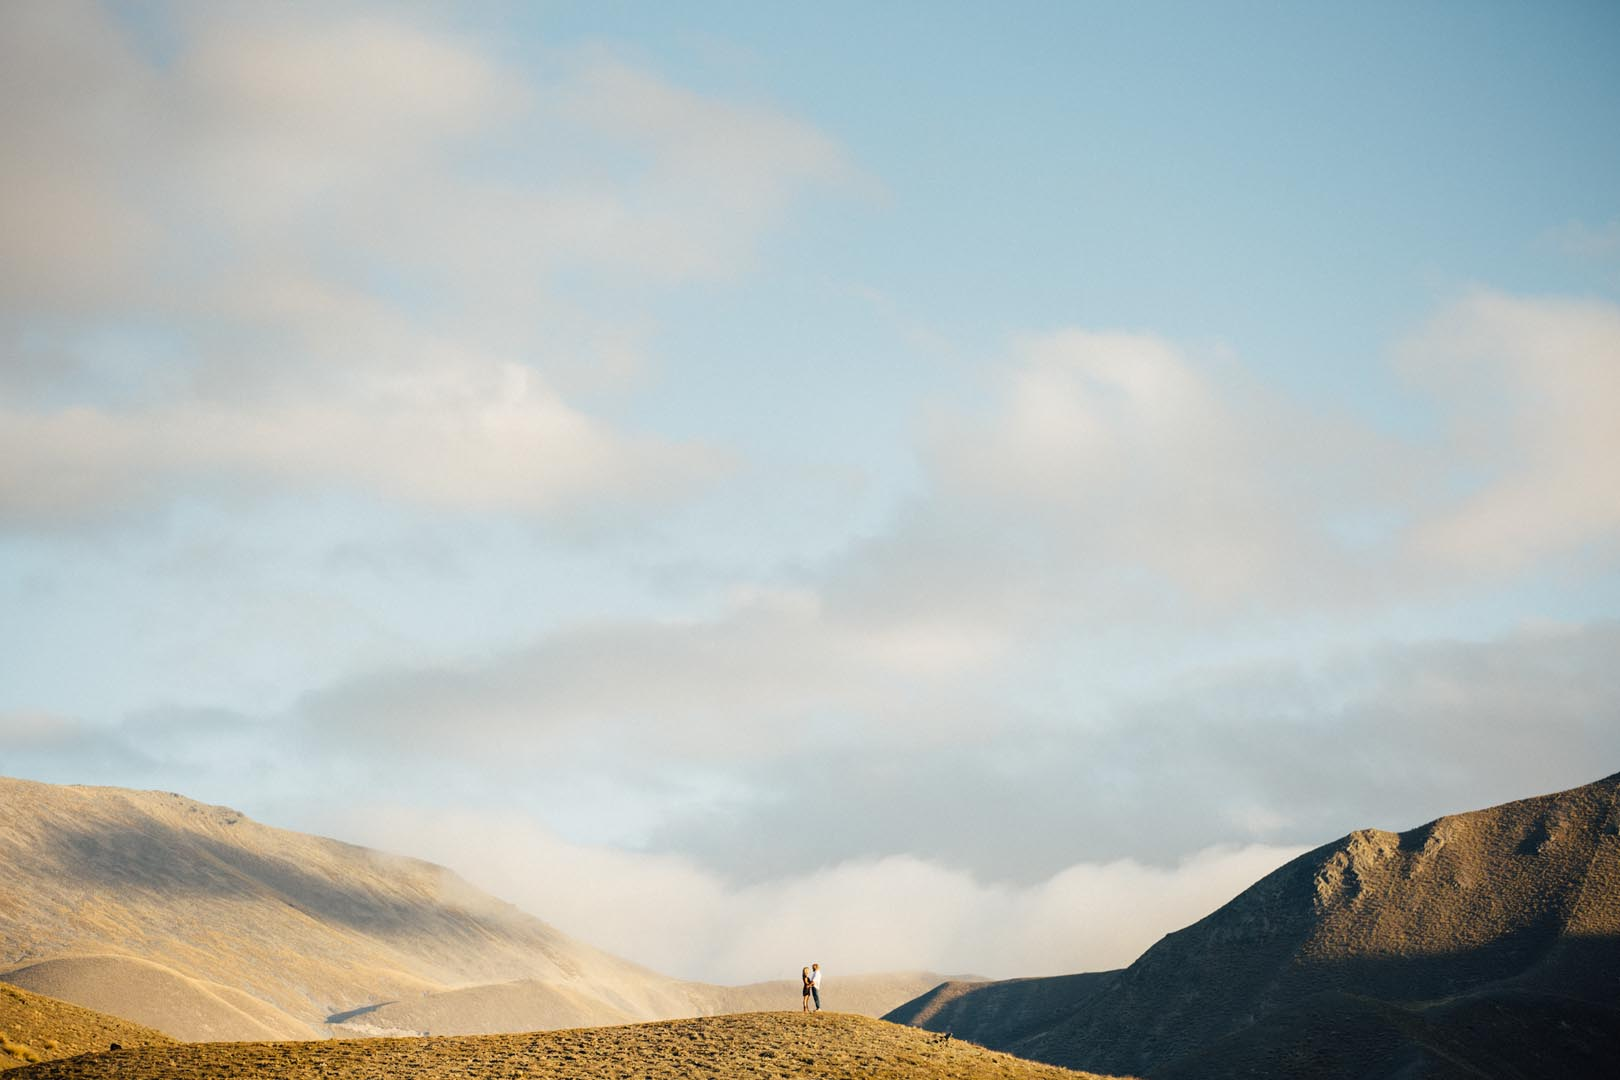 New Zealand engagement photo shoot in the mountains